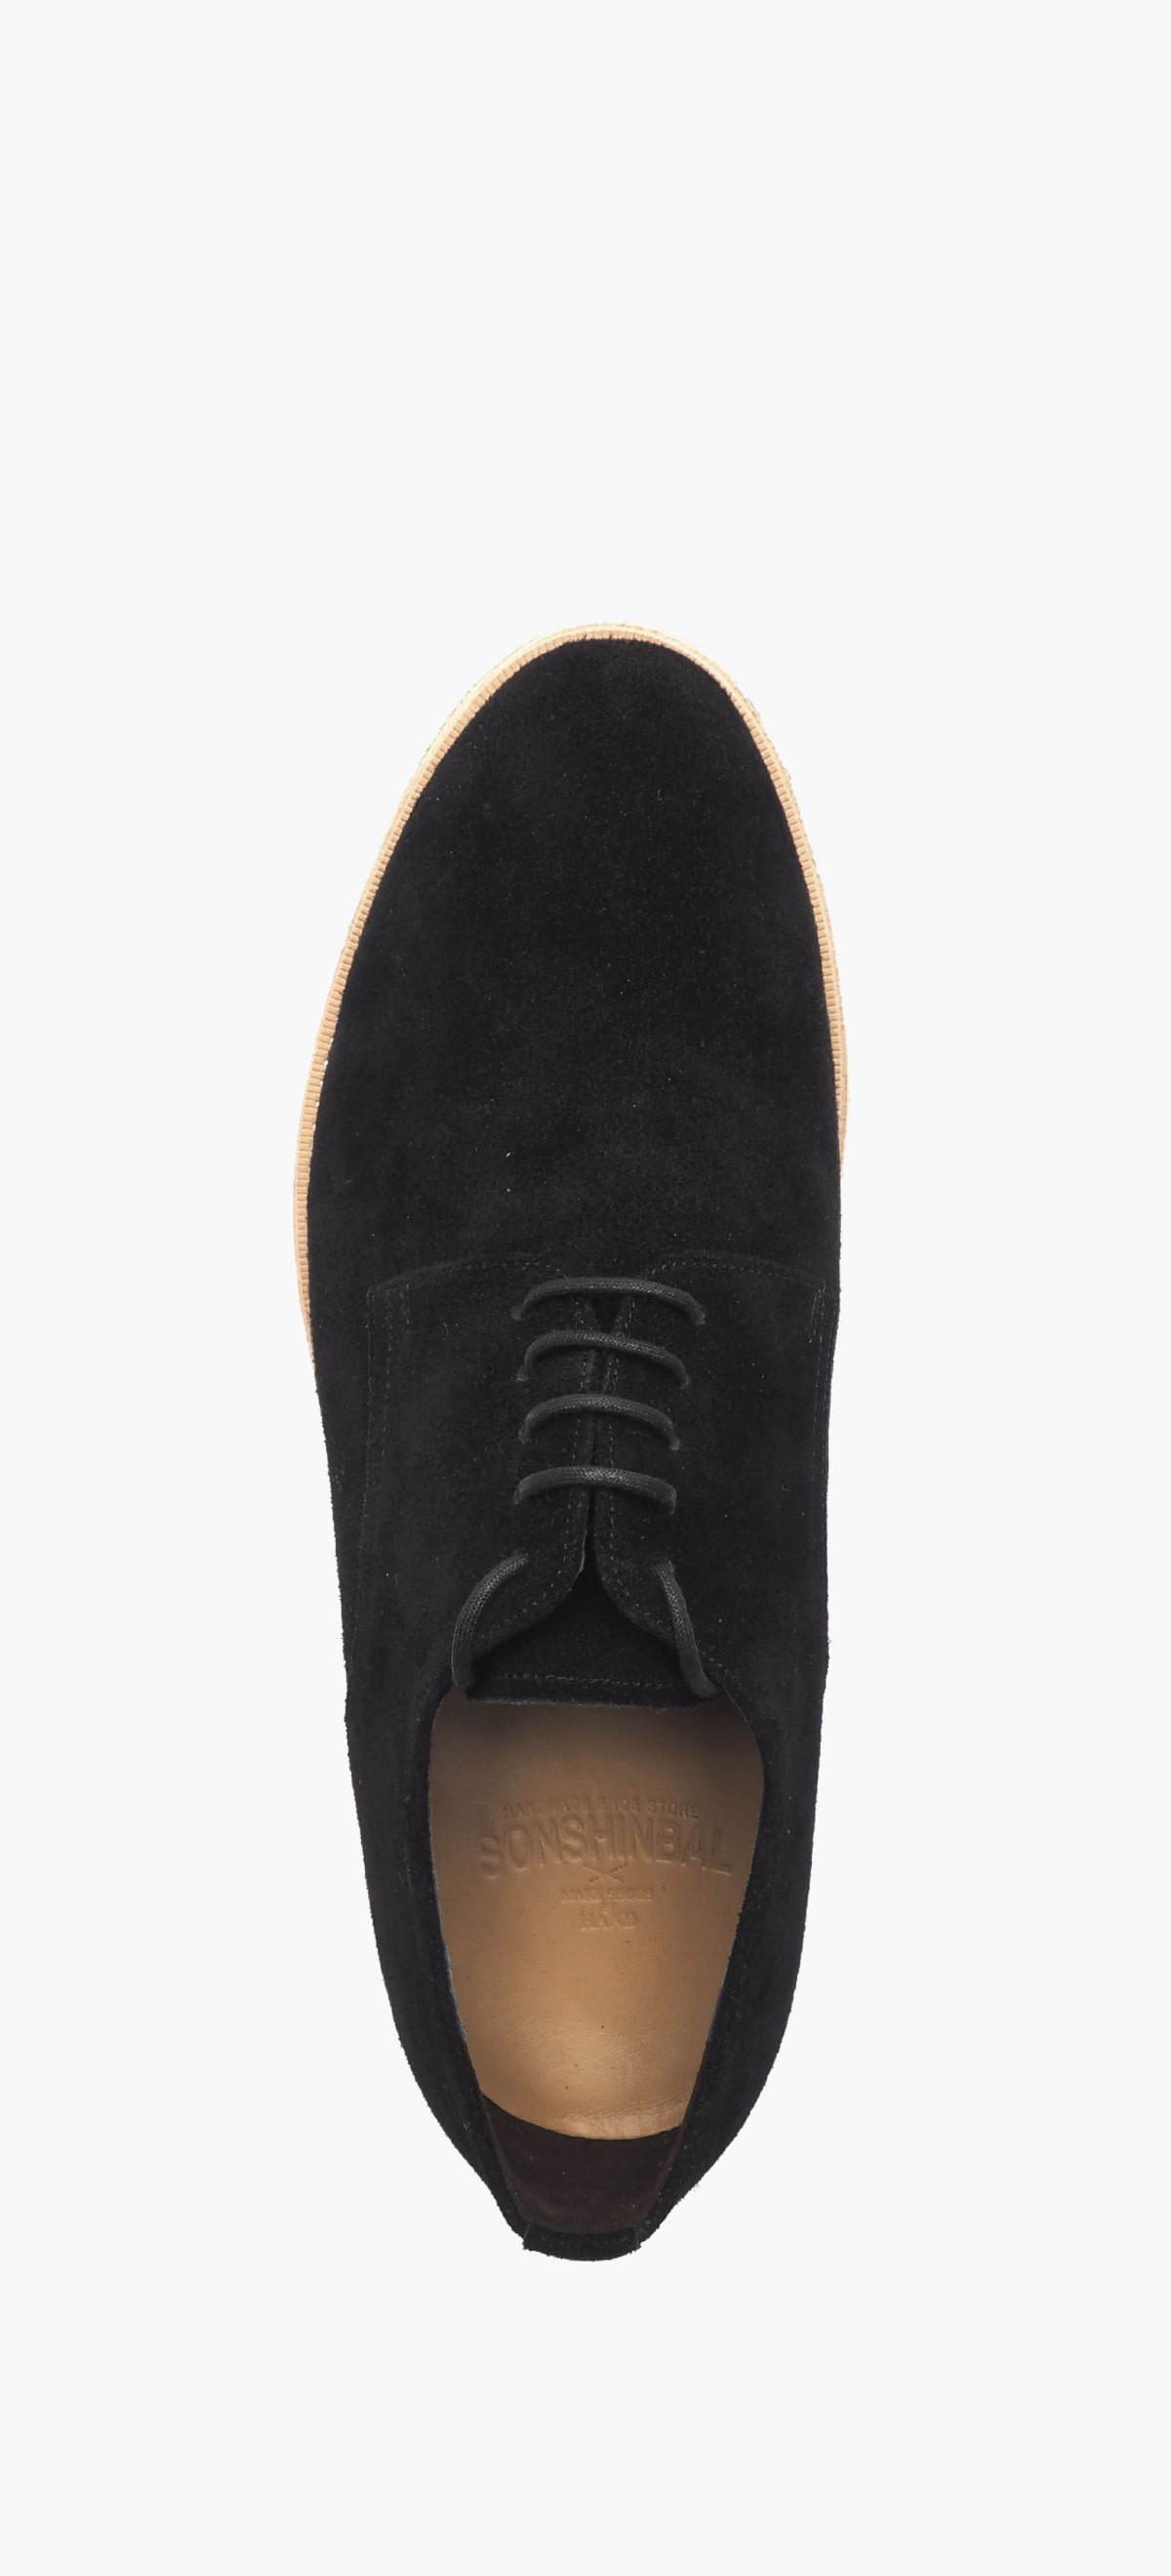 Plain Toe 2054-10-Black Suede